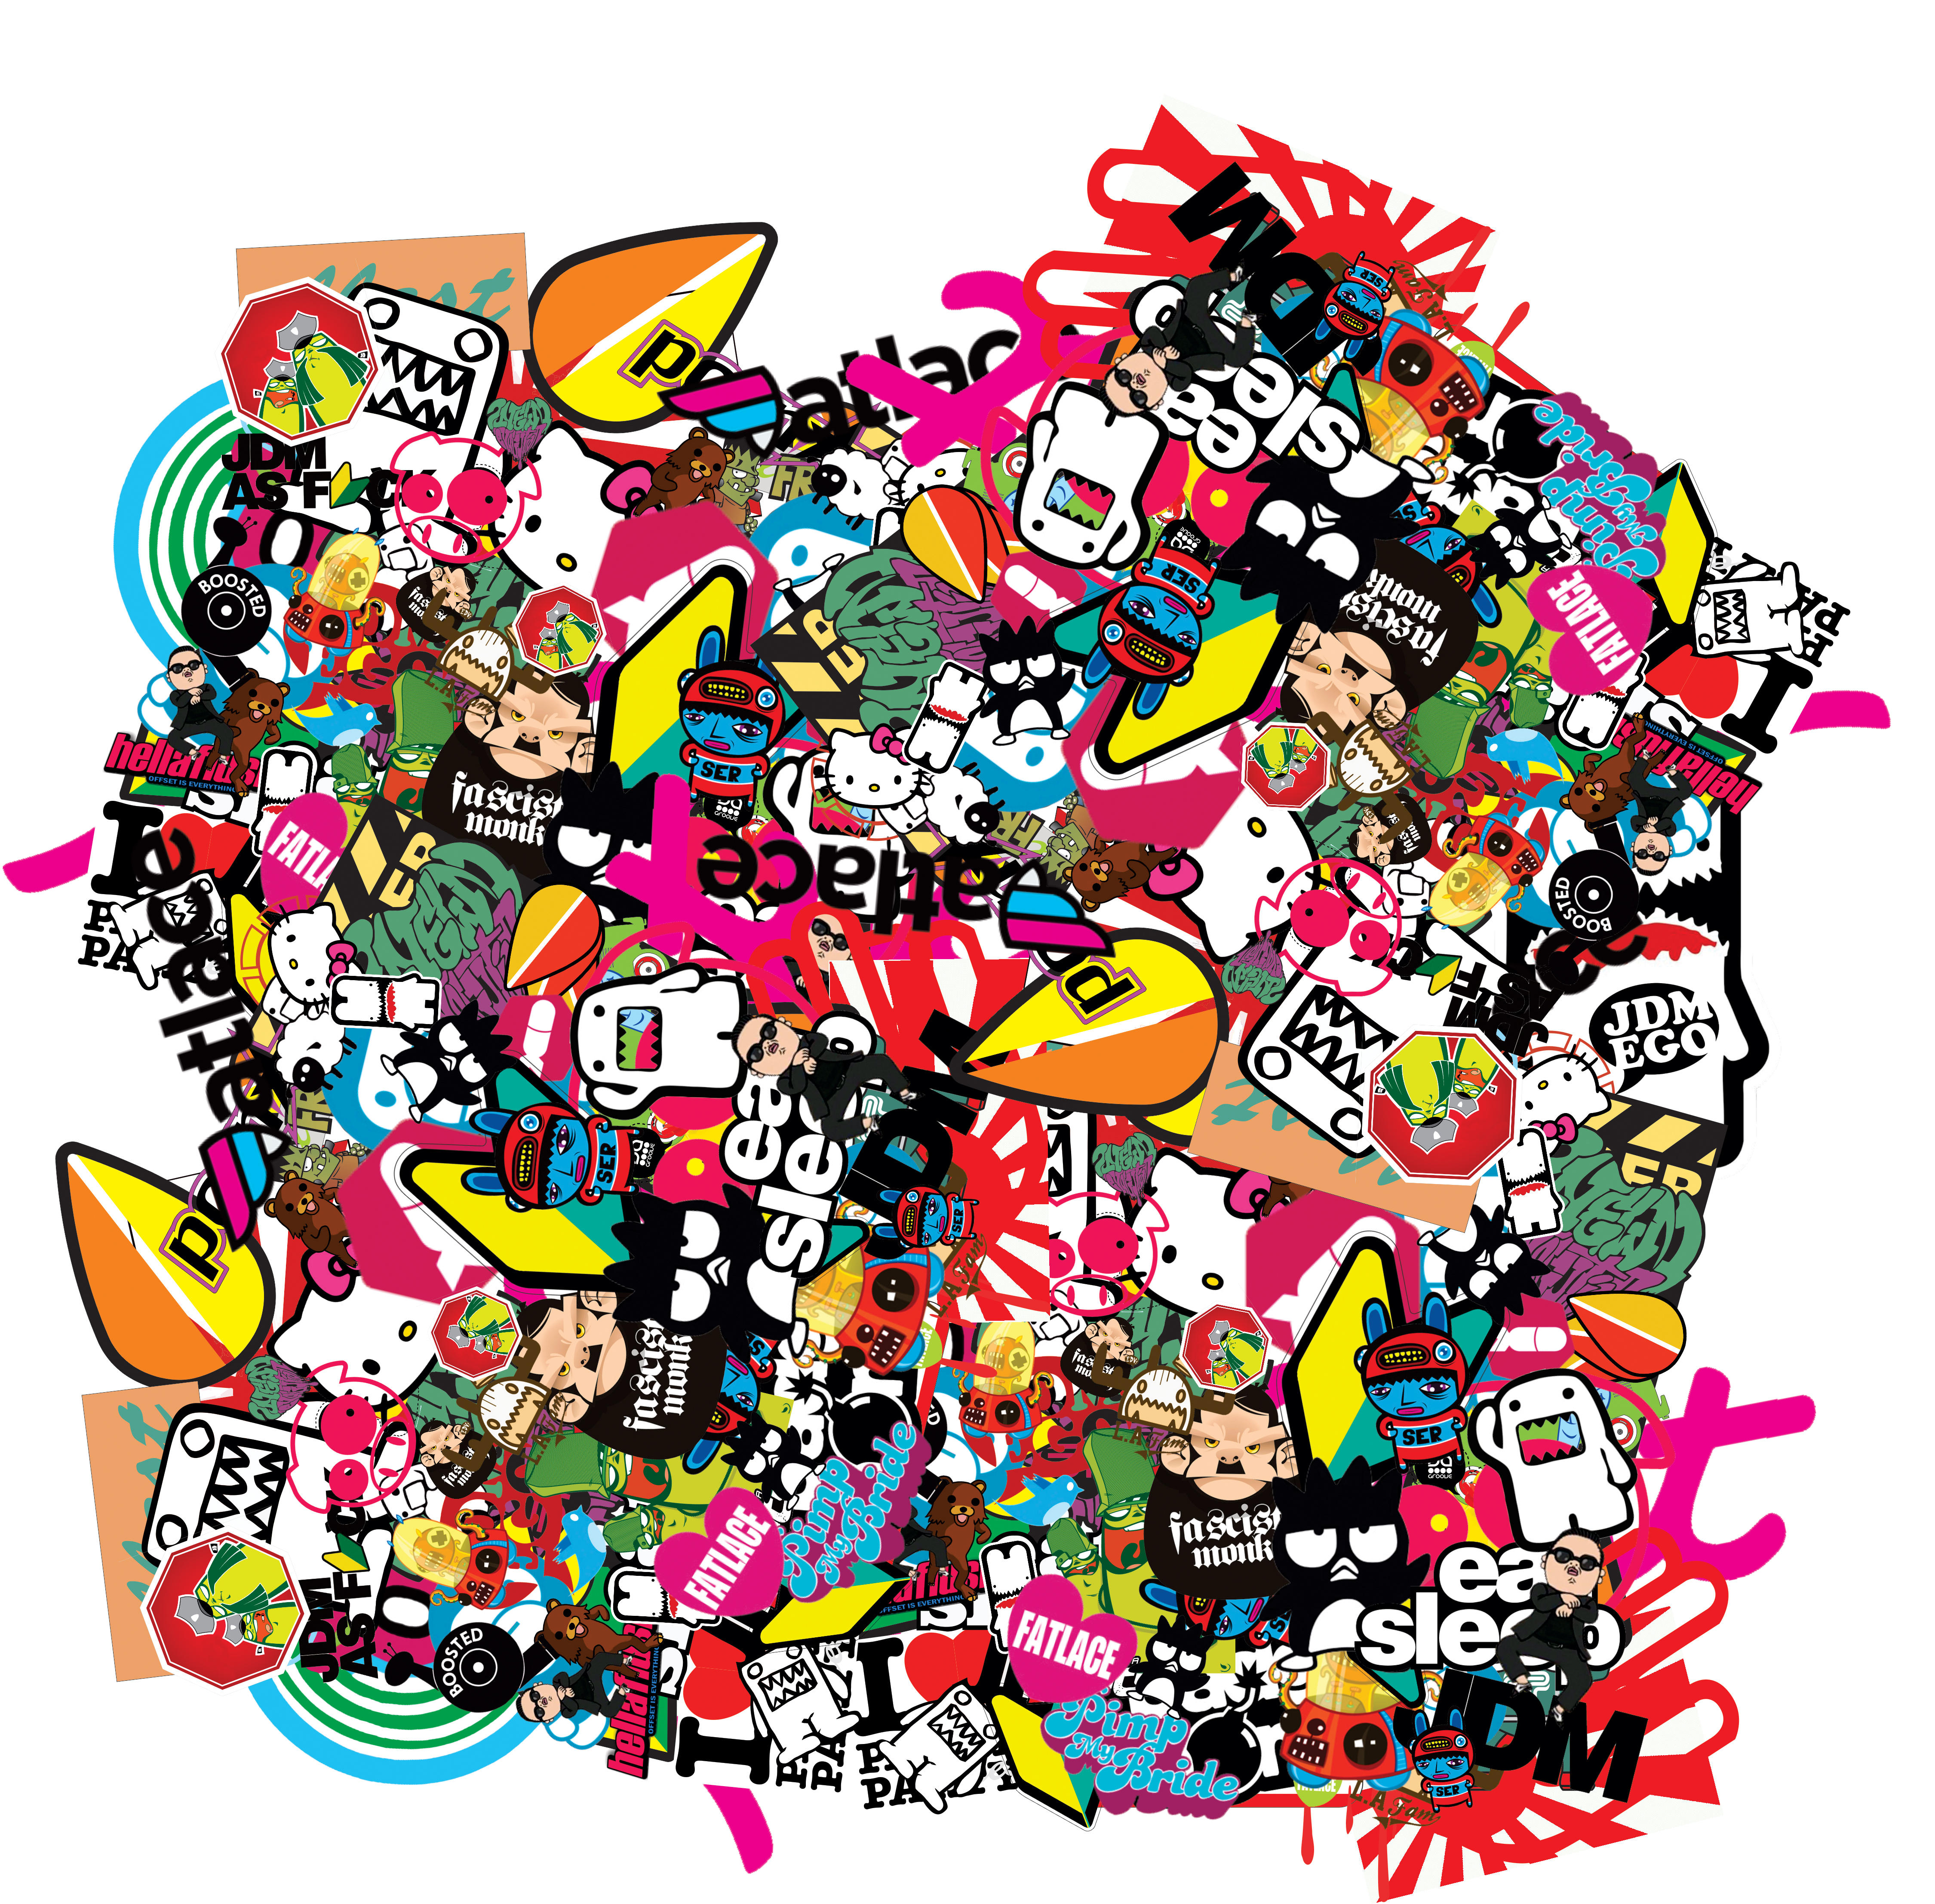 sticker bomb pack by zoexoso on deviantart